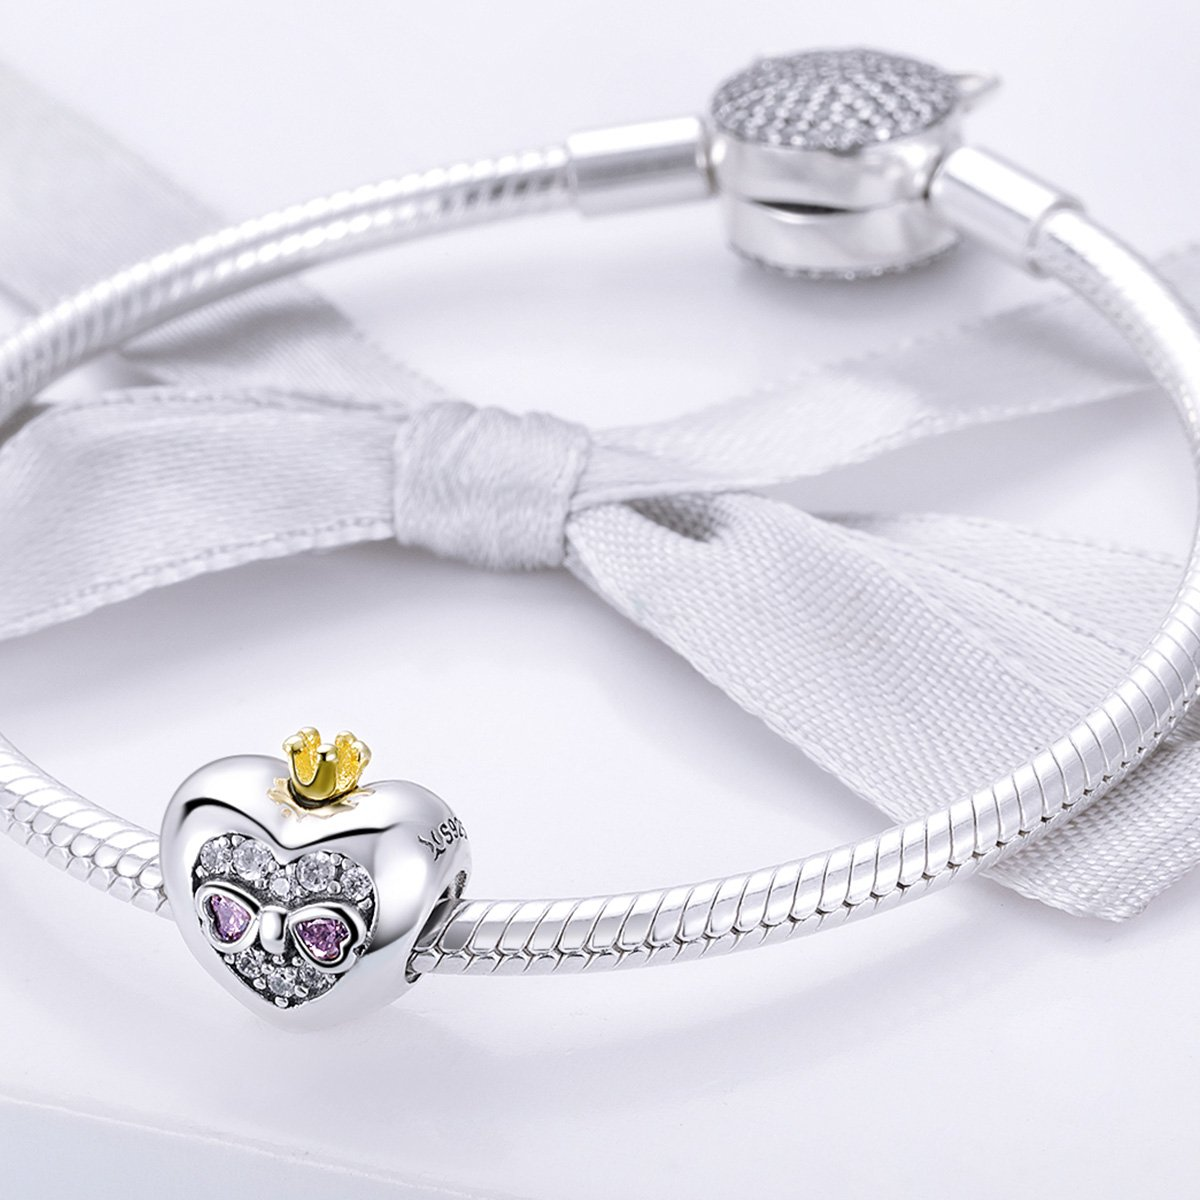 BAMOER Sterling Silver Heart of Princess Love CZ Bead Charm for DIY Snake Chain Bracelet by BAMOER (Image #3)